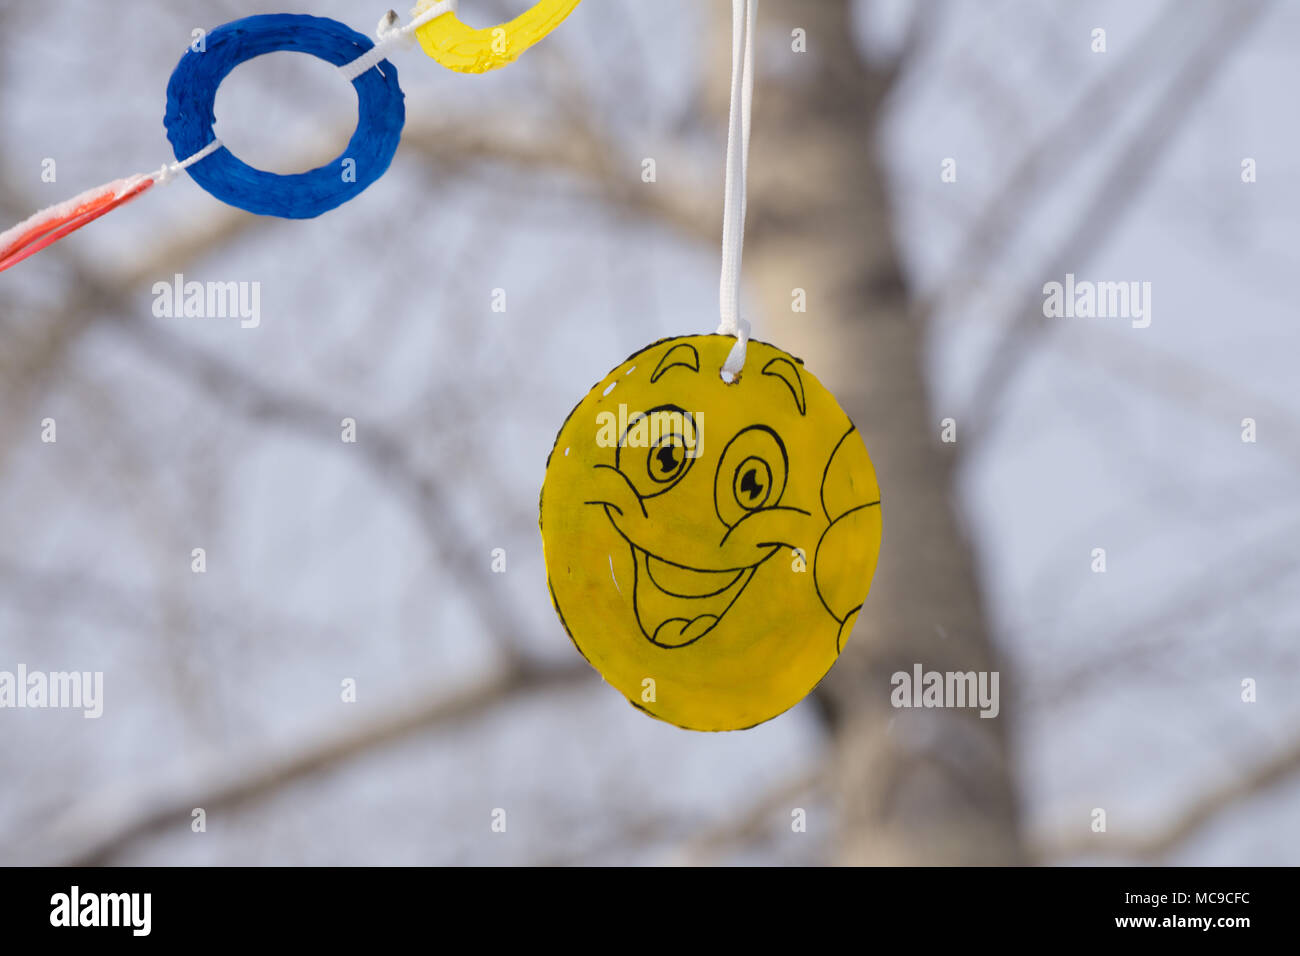 The Image Is A Yellow Ball With A Smiley Face Emoticon On A Street